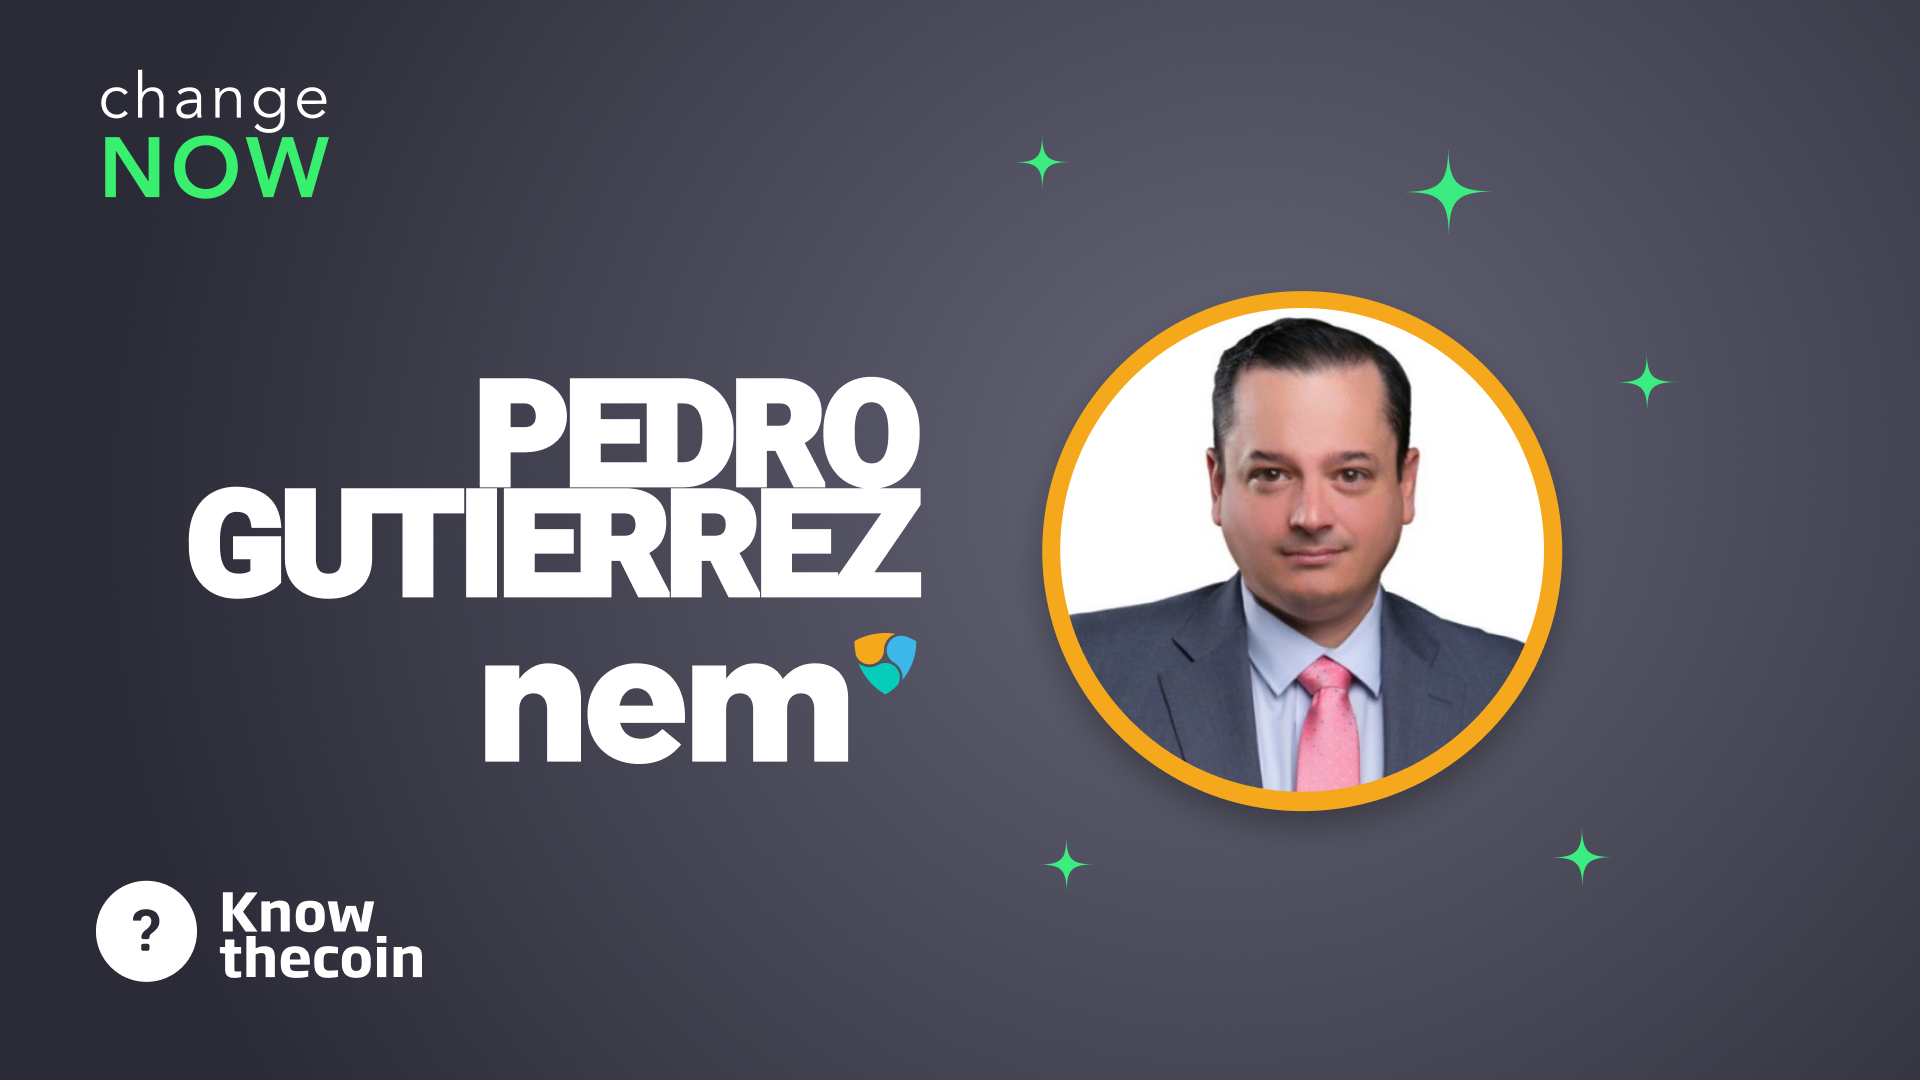 Know The Coin: NEM's Pedro Gutiérrez